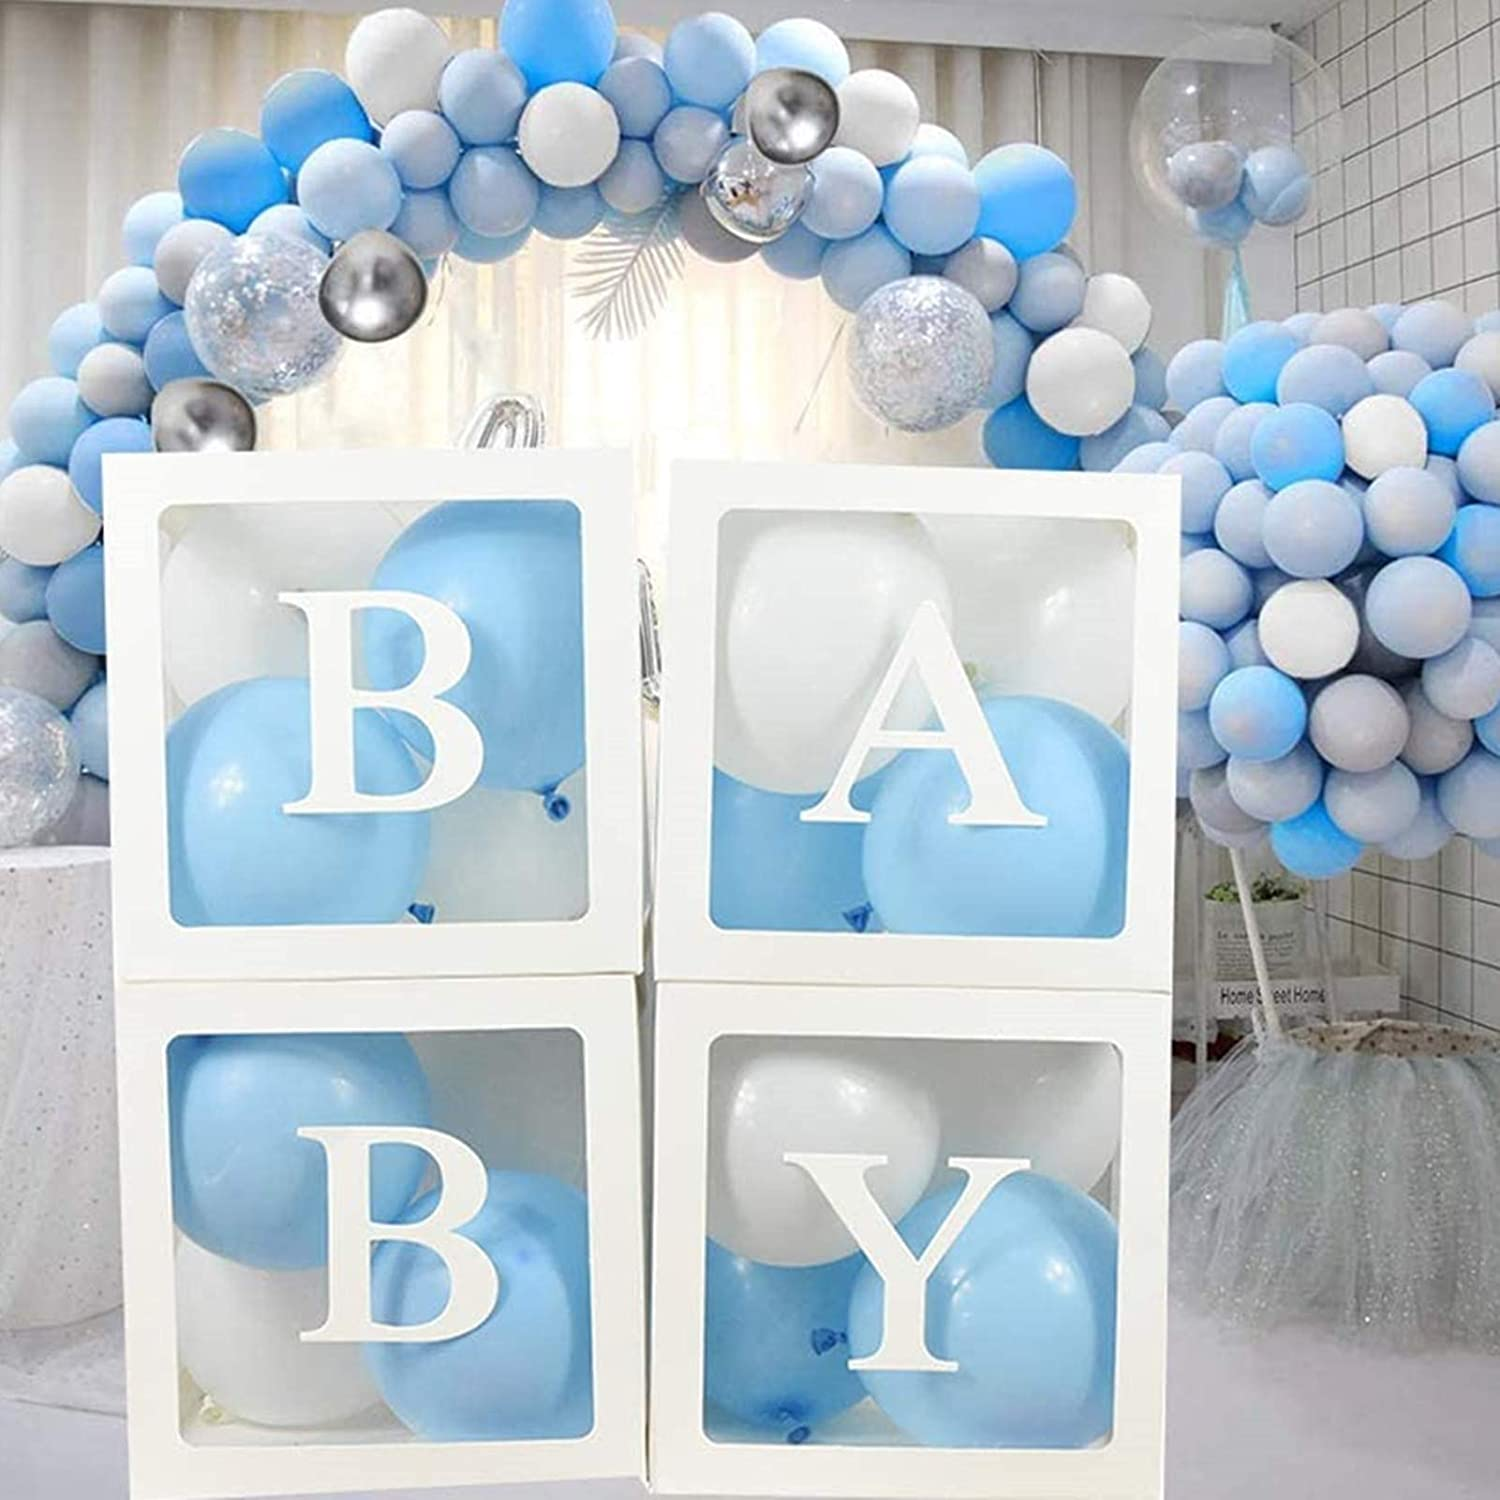 Baby Shower Decorations Balloons Box for Boys Transparent Decoration Boxes with Letters 32pcs Blue and White Balloons for Baby Shower First Birthday Party Gender Reveal Backdrop Home Decor (White)